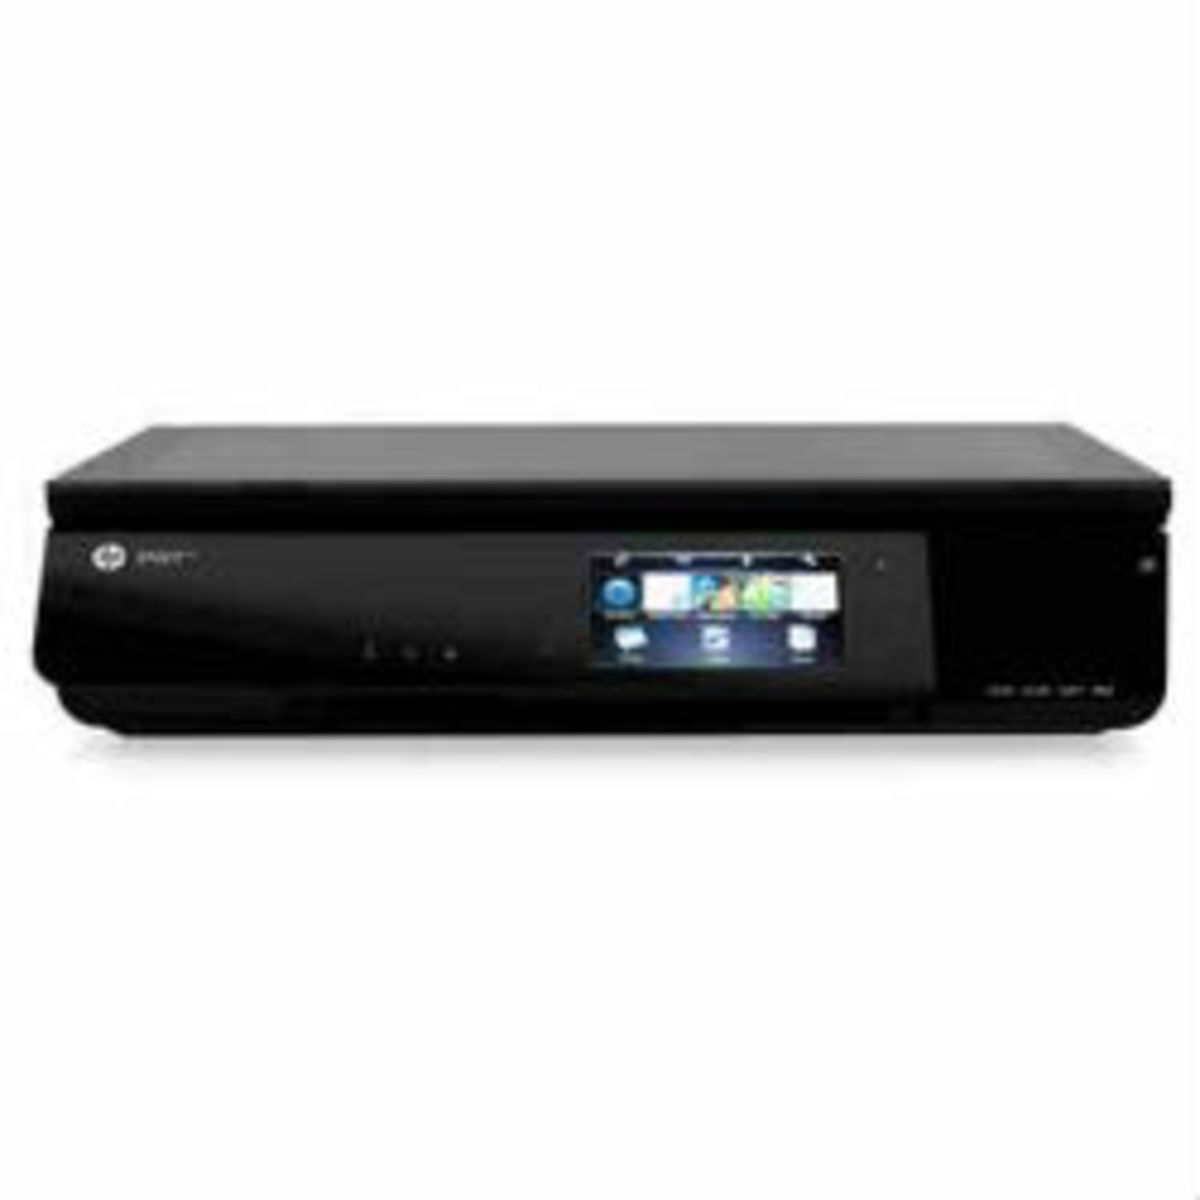 HP Envy 120 Wireless Printer Review